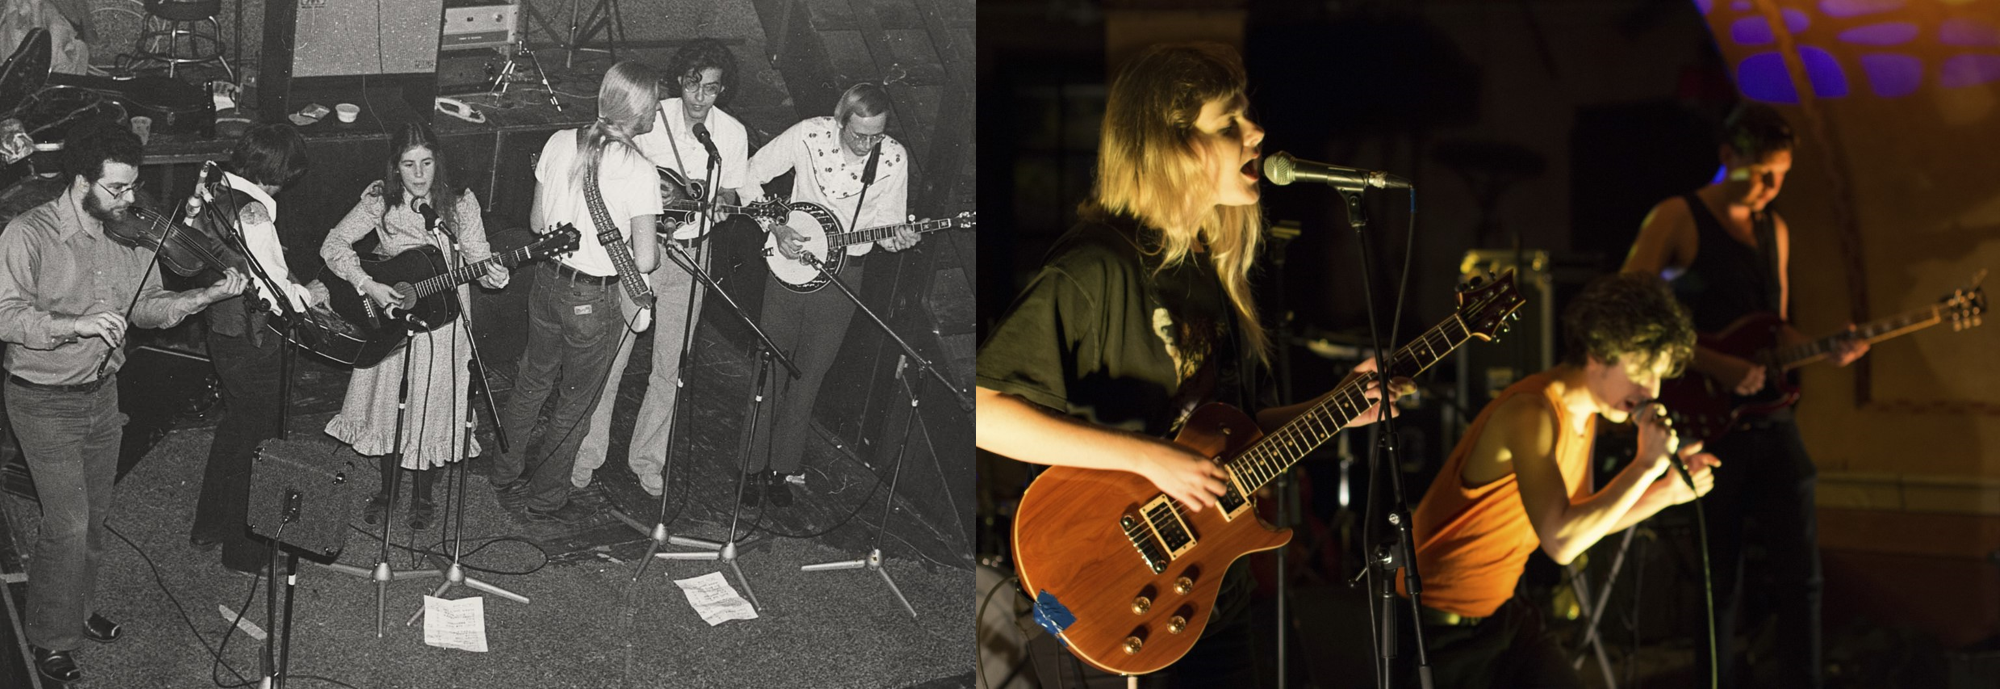 Left: A band performs at The Church Key circa 1977 for a crowd. Right: A band plays for a WUD Music show to a group of students in der Rathskeller.